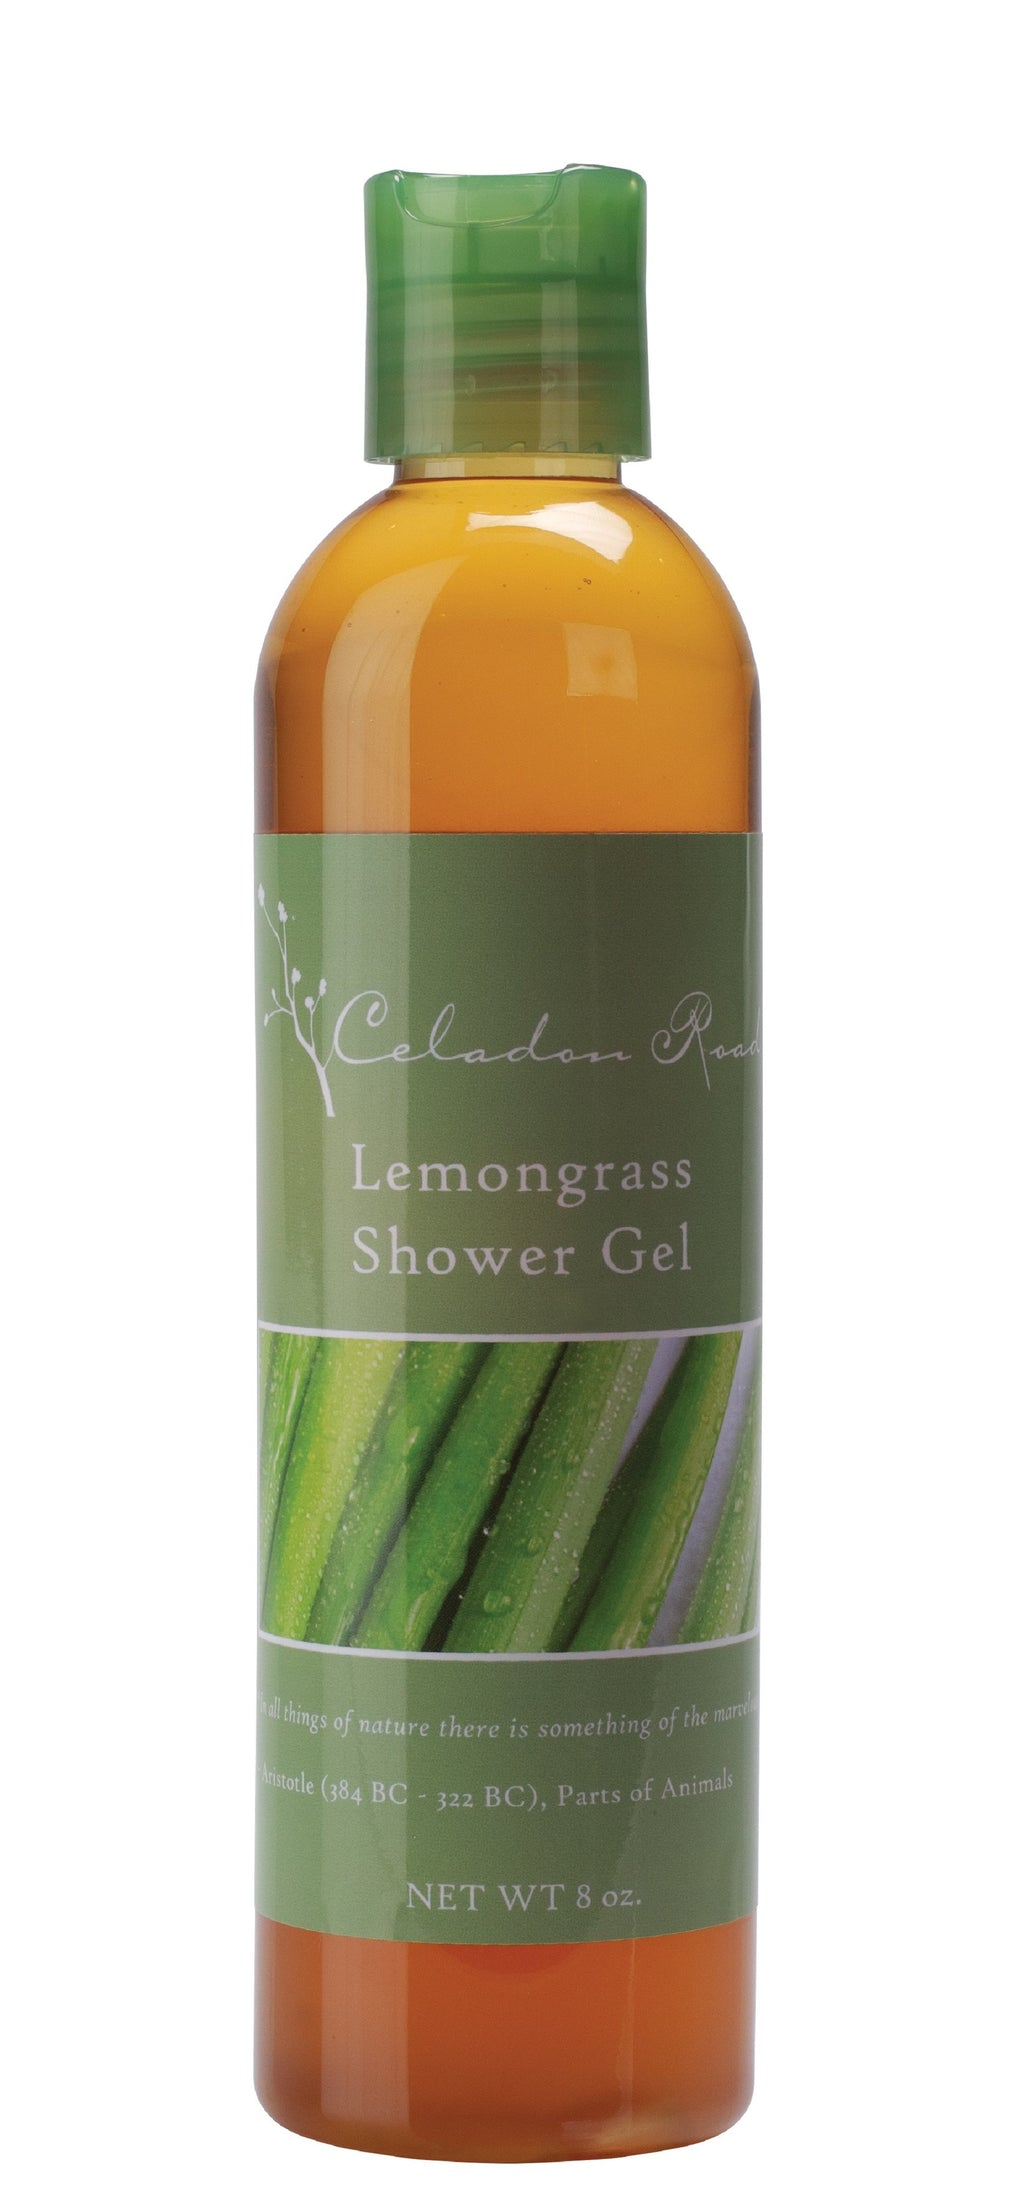 Lemongrass Shower Gel- Celadon Road- www.celadonroad.com